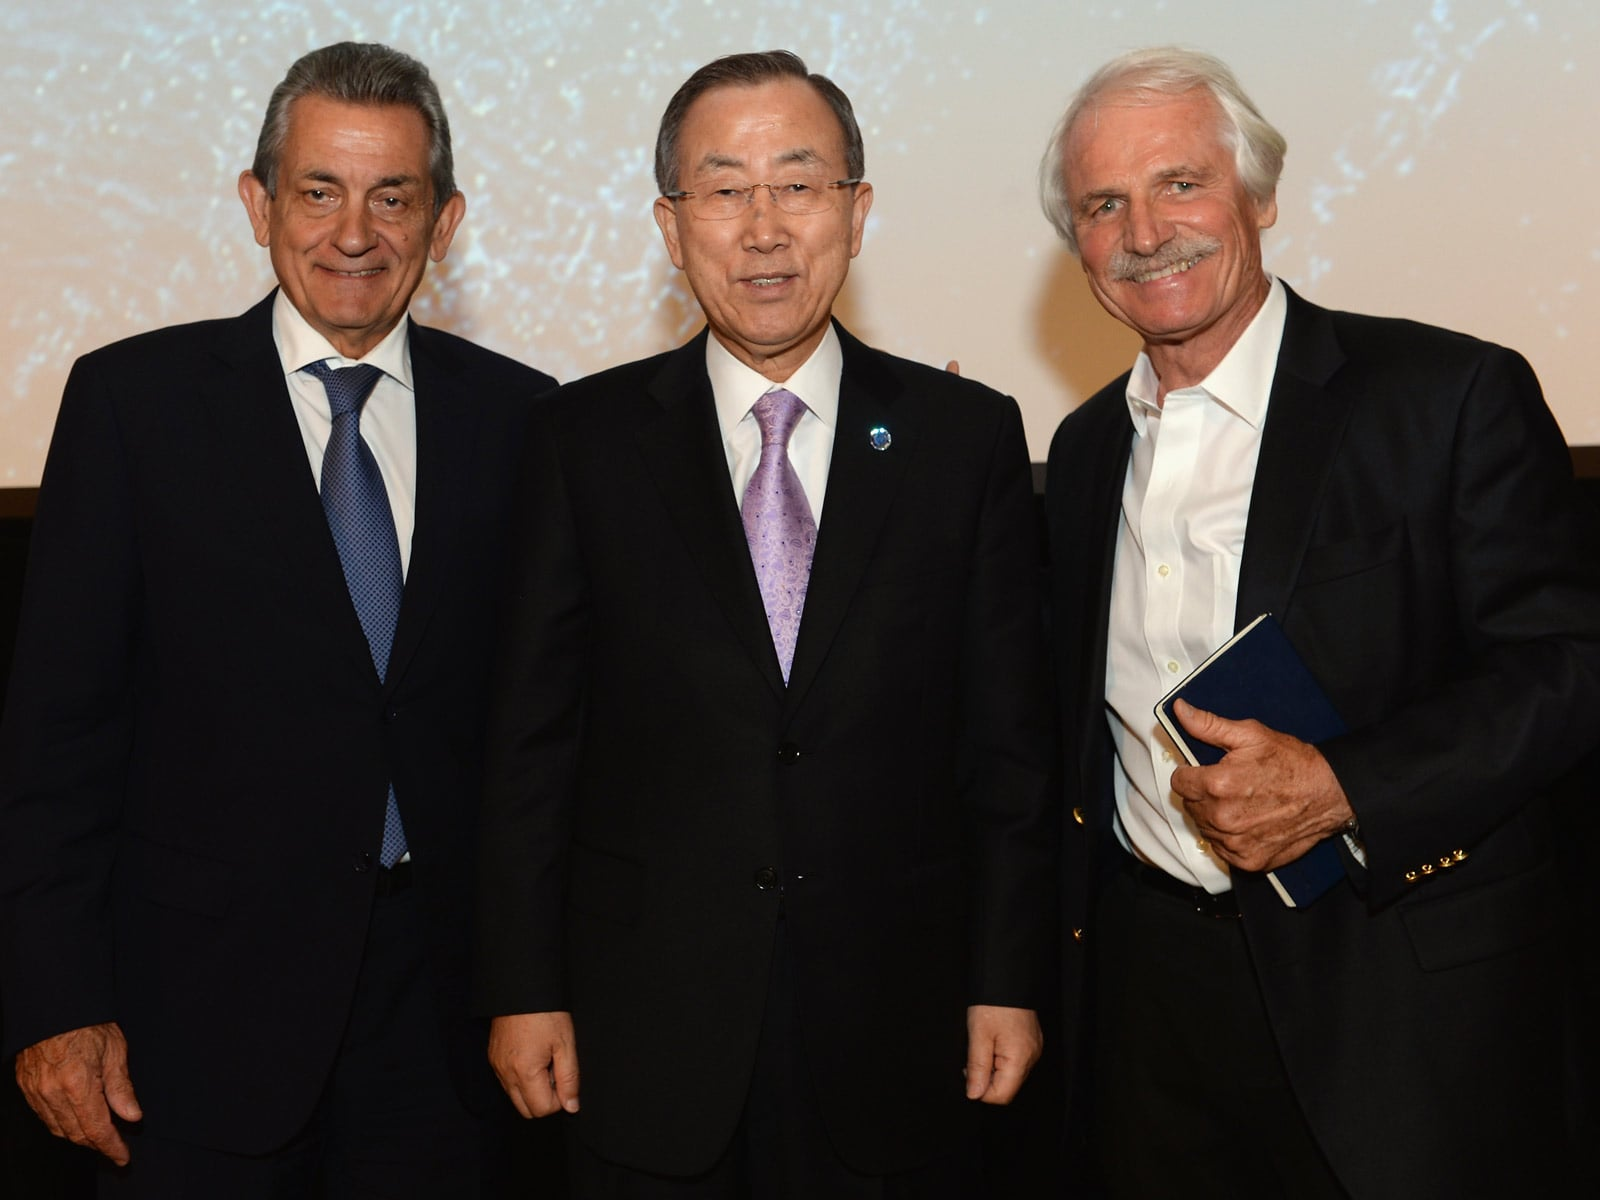 Stephen Urquhart, Ban Ki-Moon and Yann Arthus-Bertrand